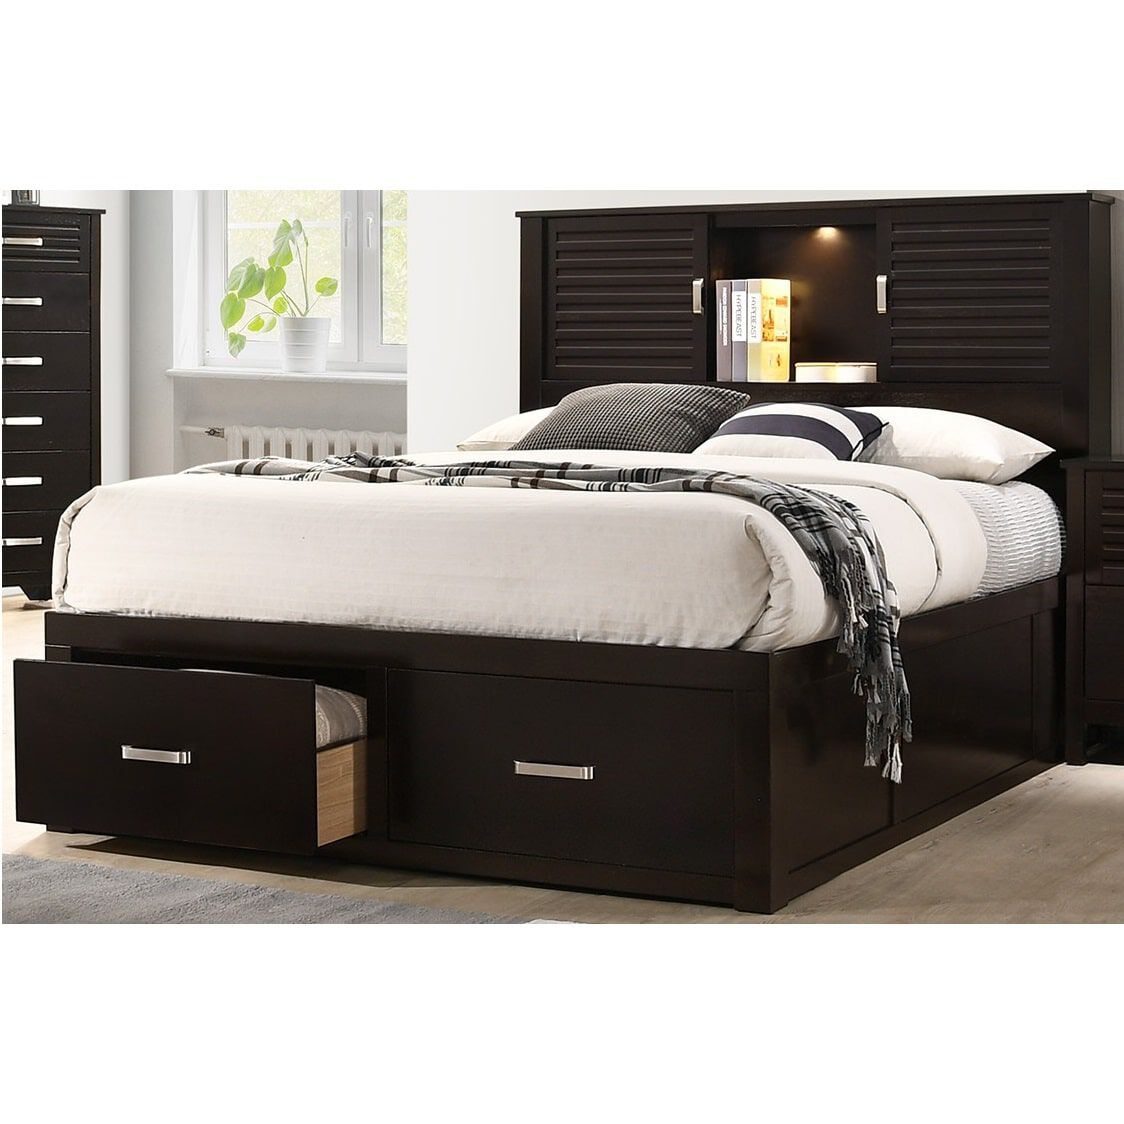 Bedroom Mattress 9 Piece Dalton Queen Bedroom Collection With Tight Top Mattress